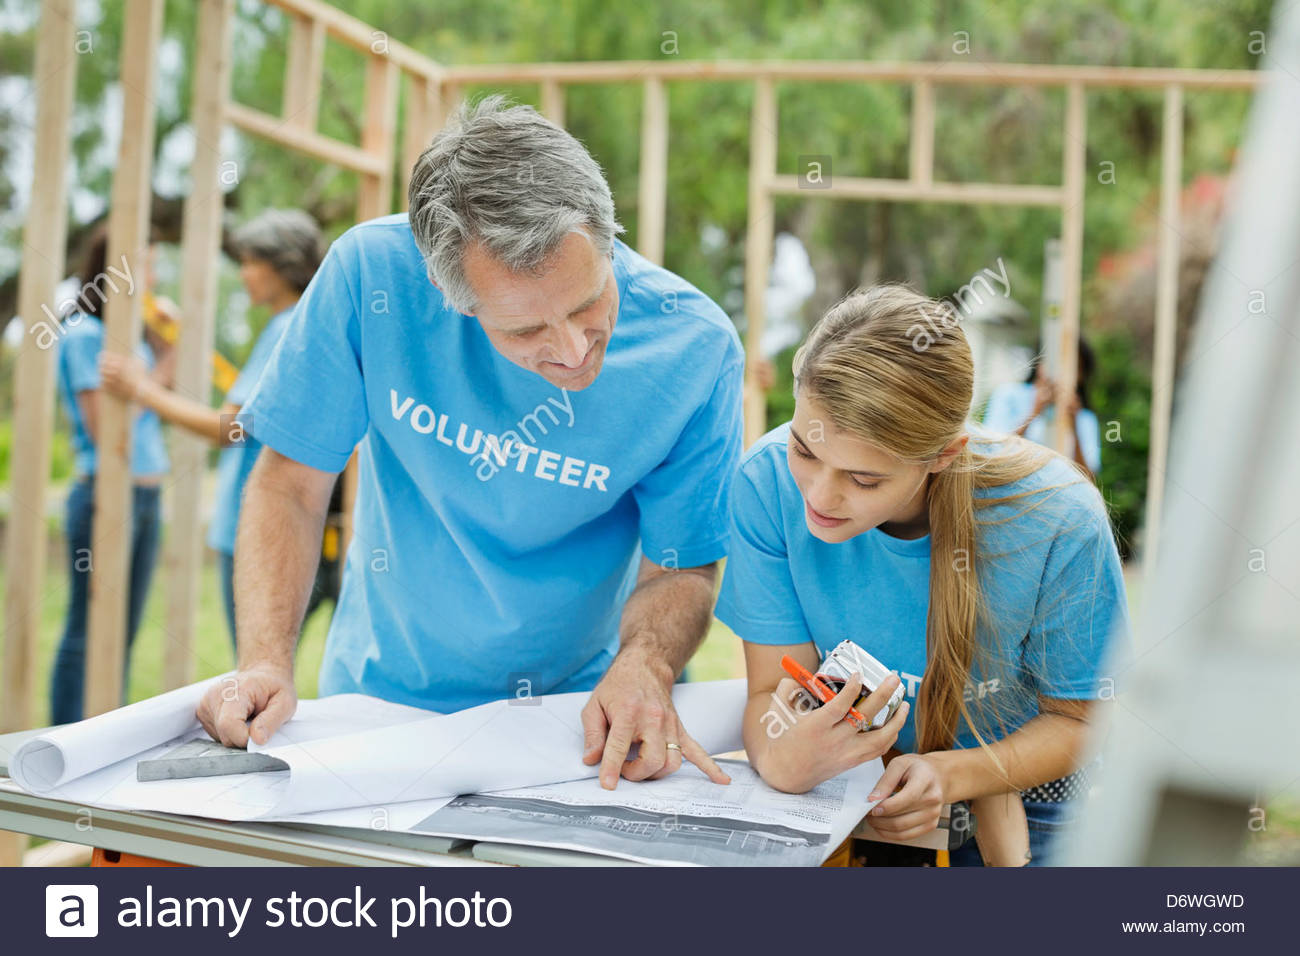 Two volunteers discussing blueprint while people work in background - Stock Image